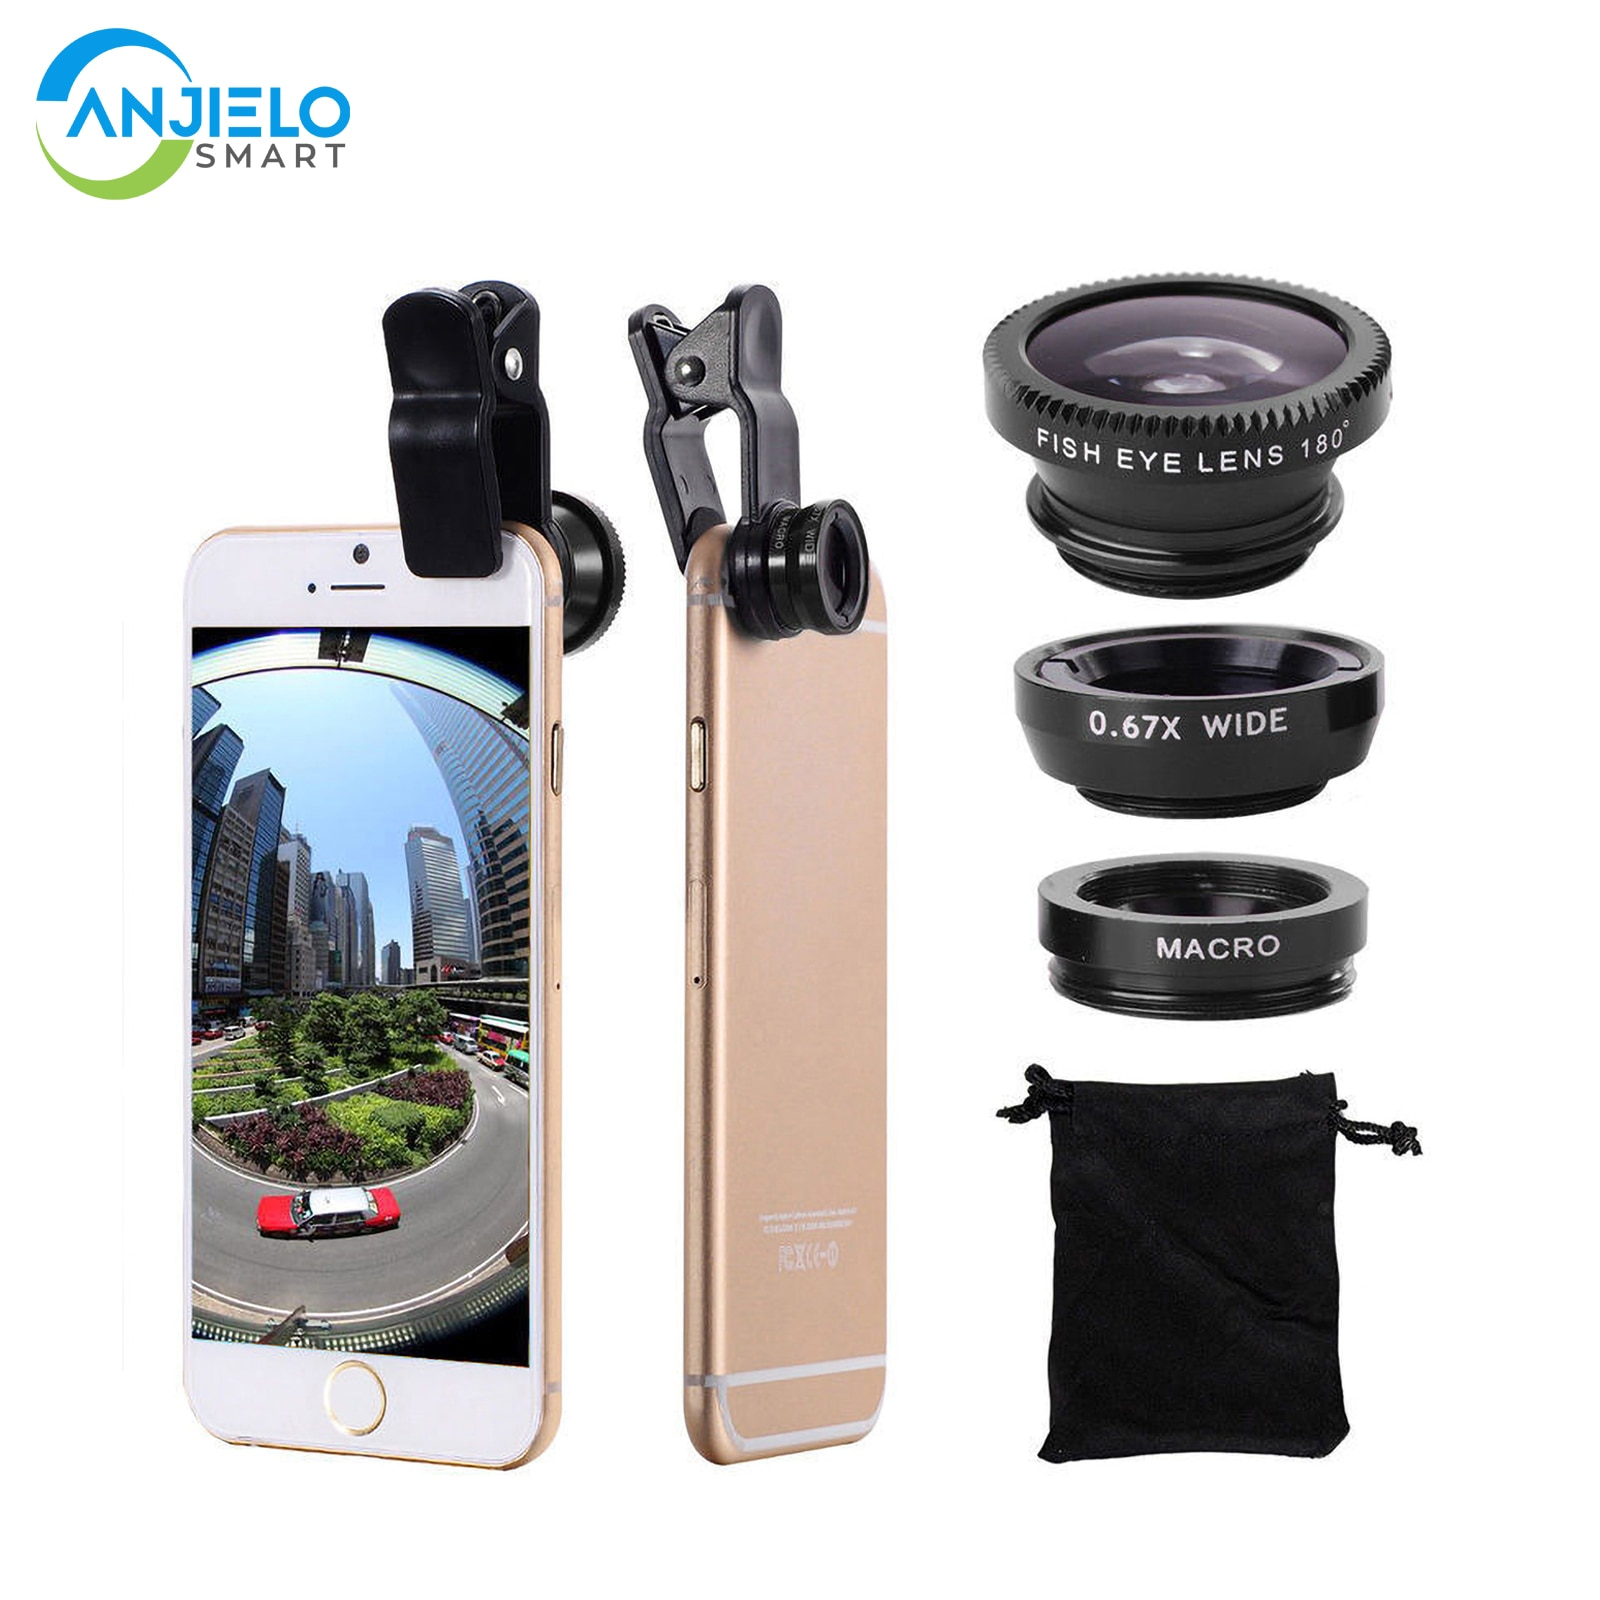 AliExpress - 360 Degree Rotate Shark Tail Shape Clip Wide Angle Macro Fisheye Lens 3 in 1 Cell Phone Camera Lens Kit for Mobile Phones Iphone